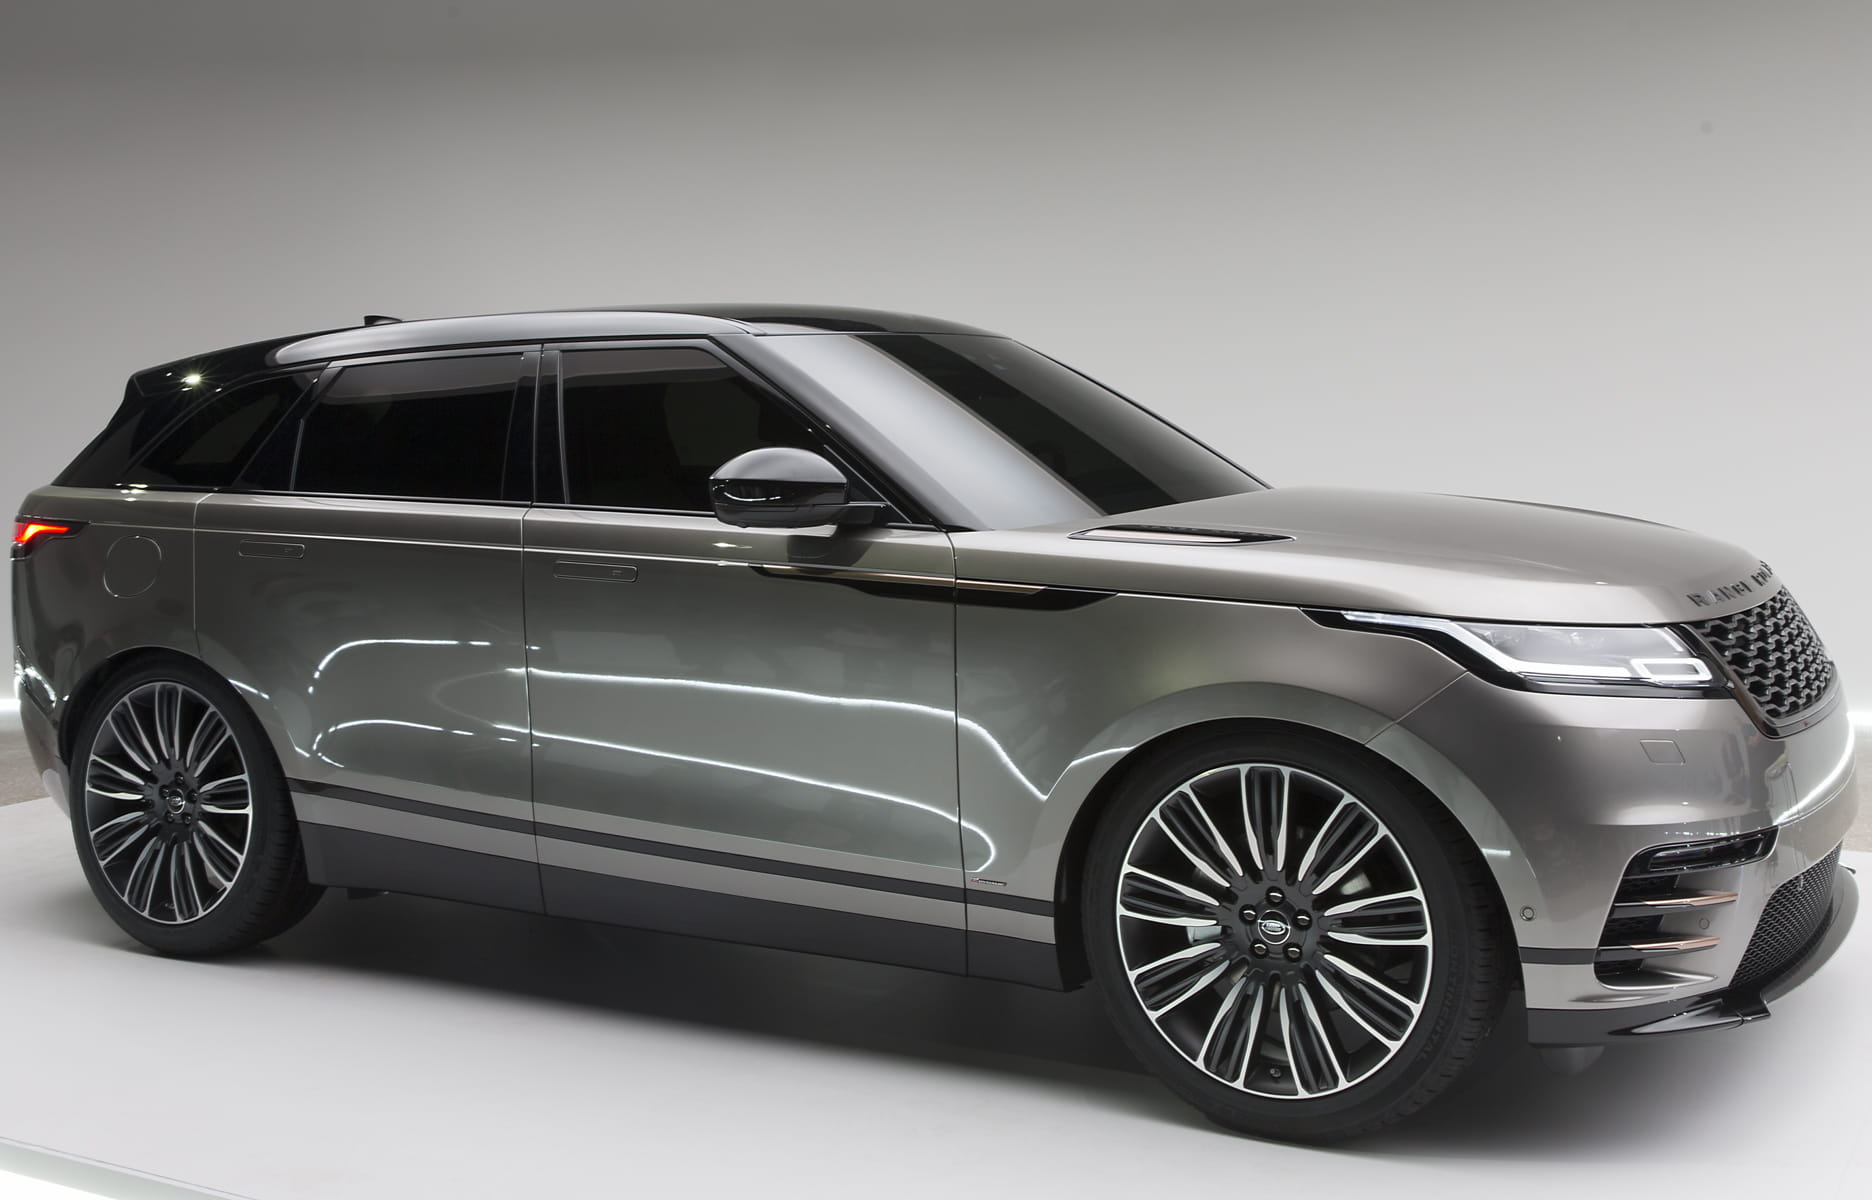 milan amy et massimo frascella d voilent le nouveau range rover velar. Black Bedroom Furniture Sets. Home Design Ideas